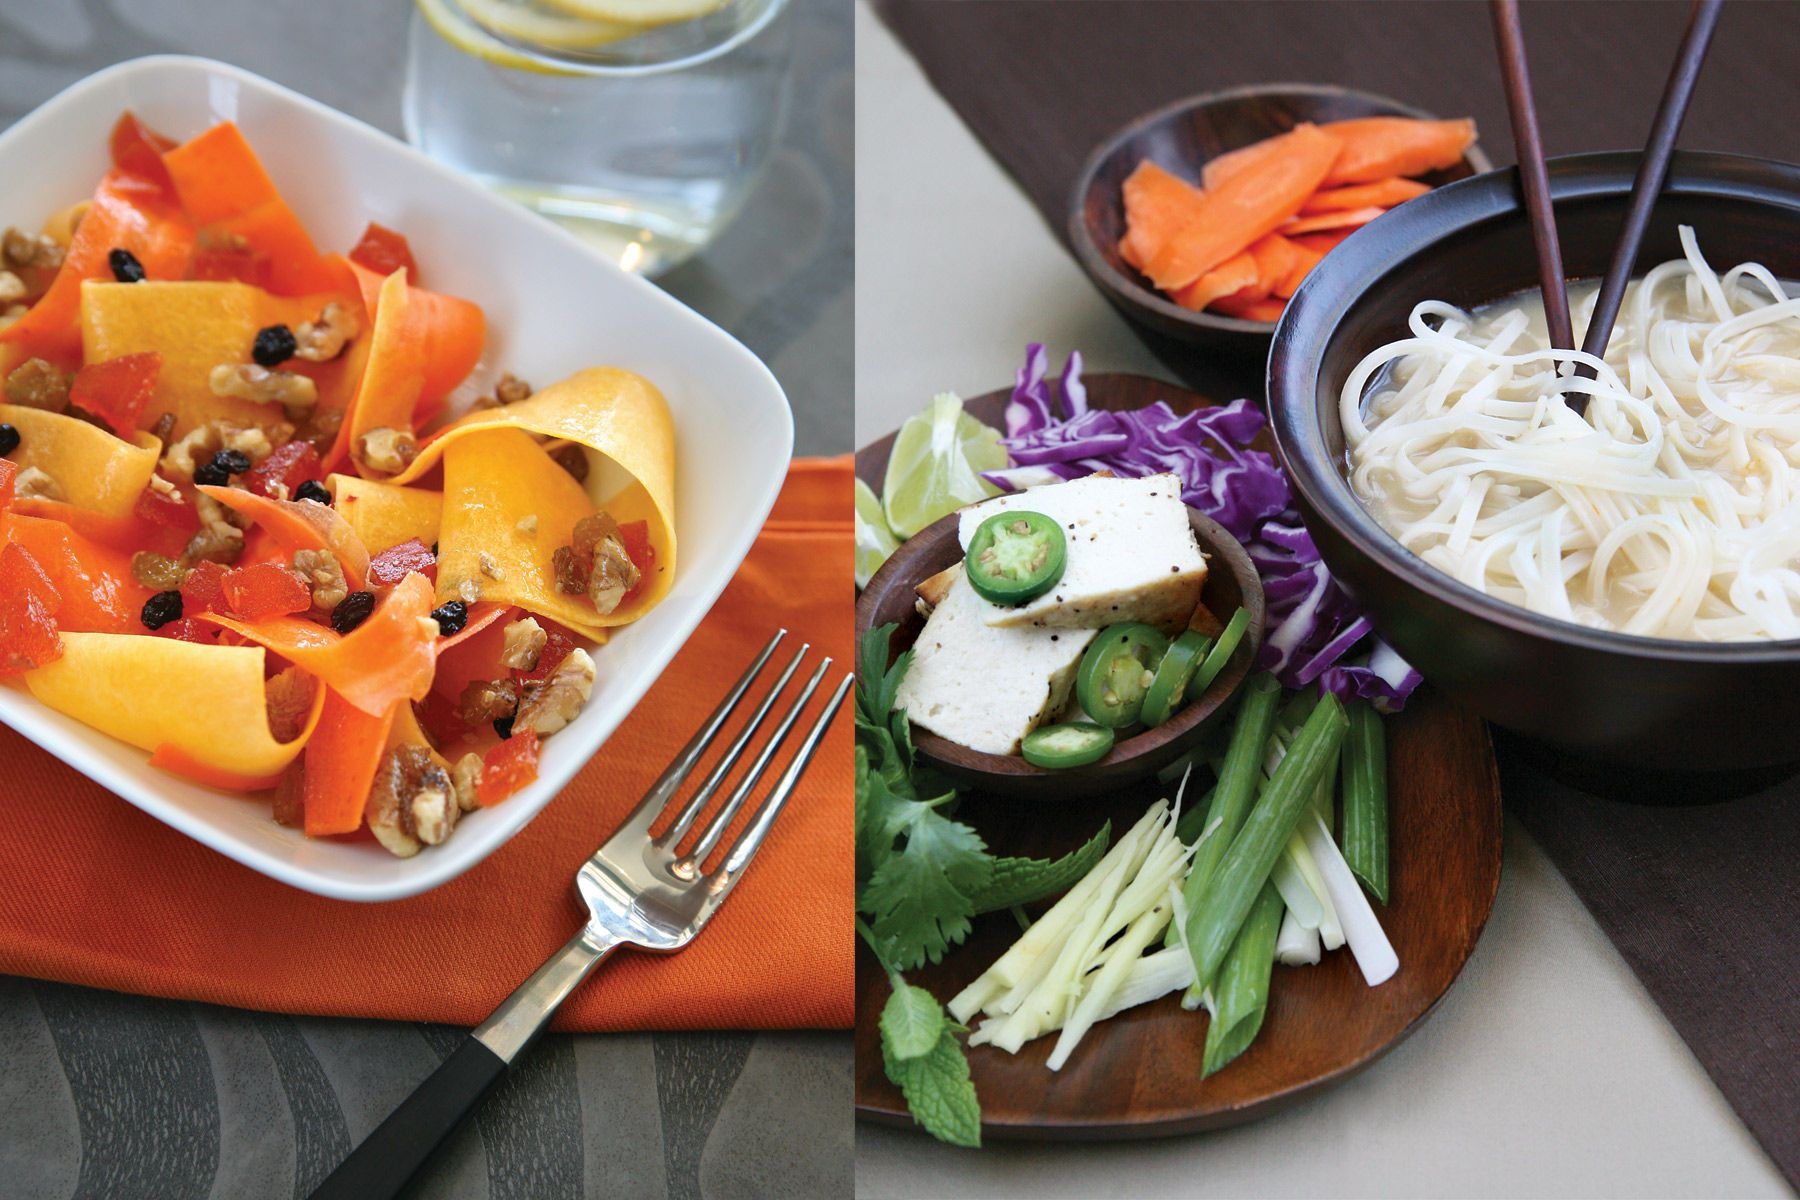 Left: Carrot and Butternut Squash SaladRight: Spicy Asian Noodle Soup